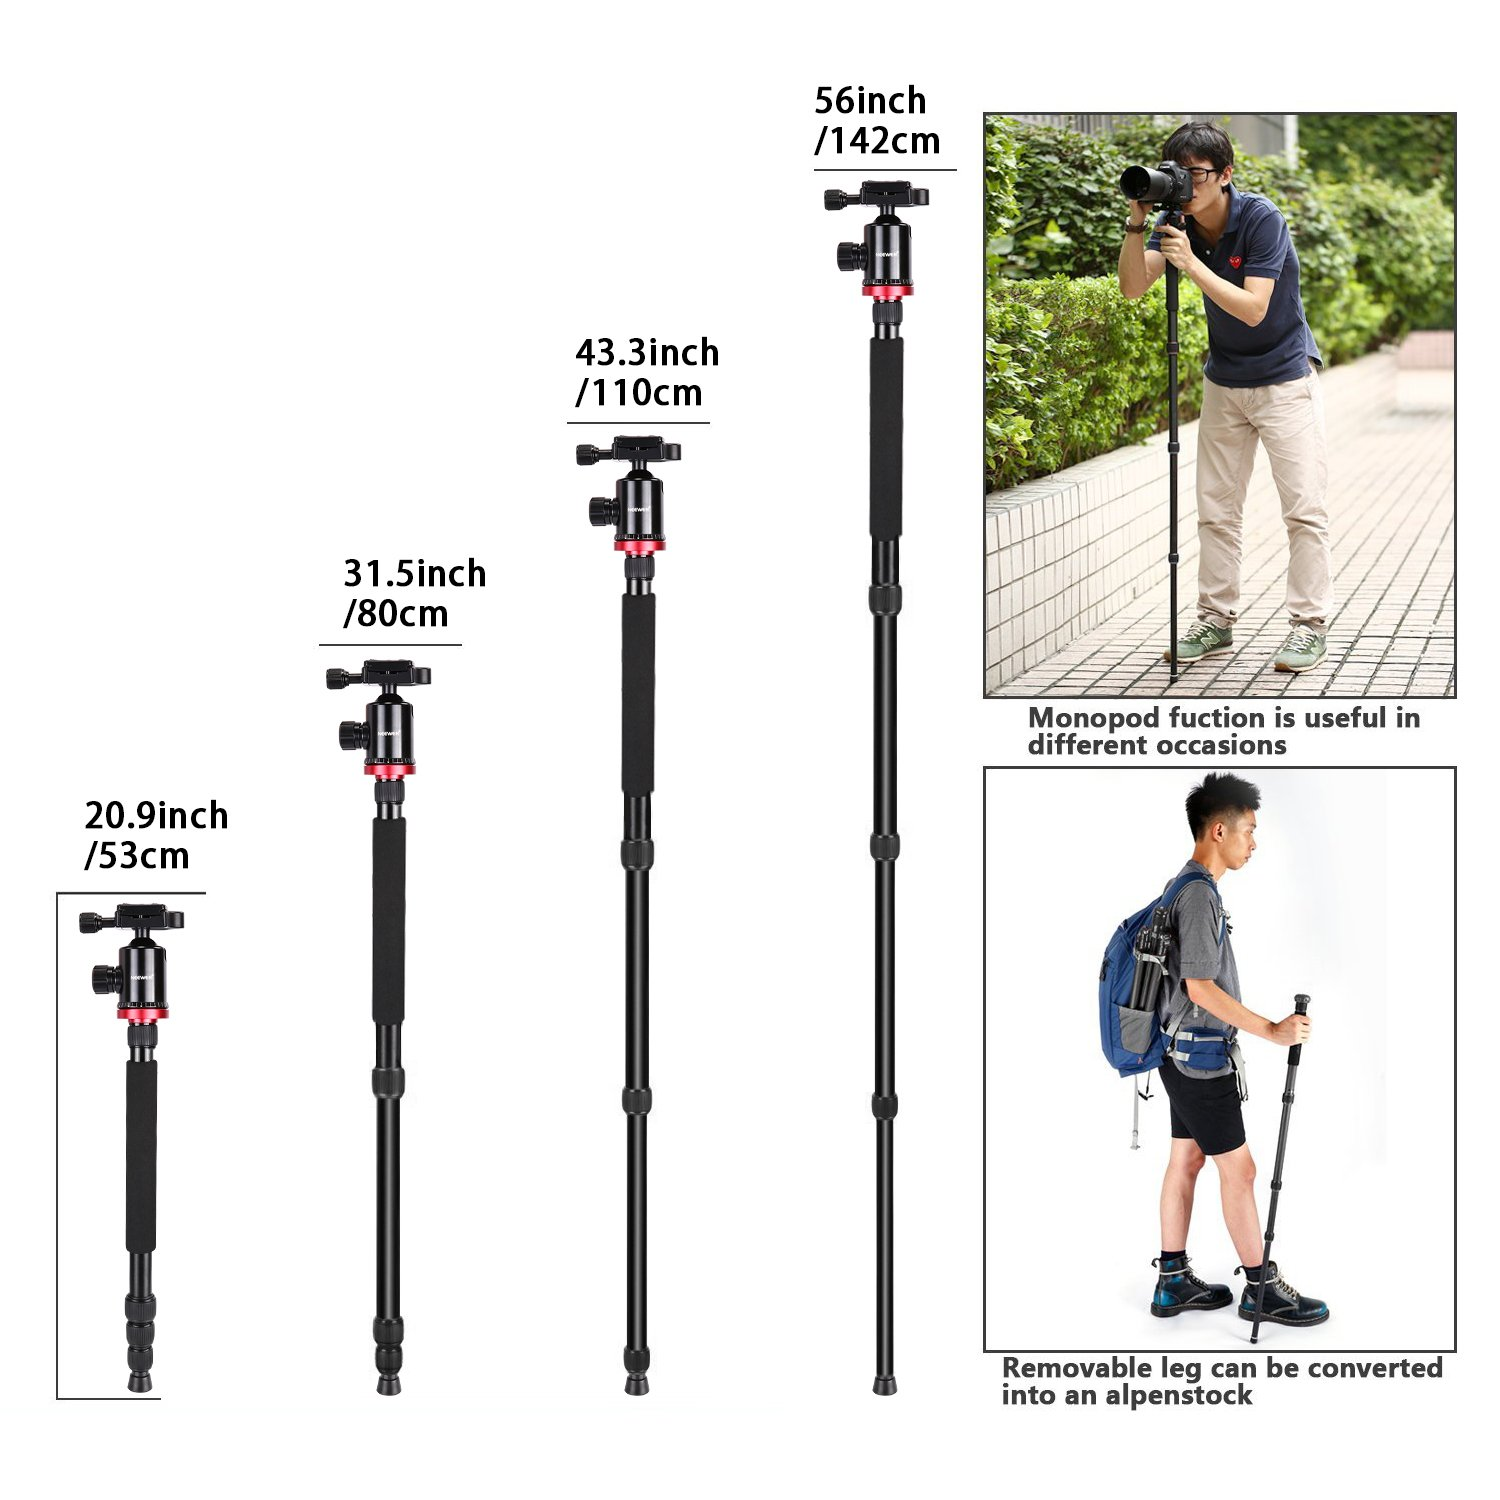 360 Degree Ball Head for DSLR Camera Video Camcorder up to 26.5 pounds Aluminum Alloy 75 inches//191 Centimeters Neewer Camera Tripod Monopod with Rotatable Center Column for Panoramic Shooting